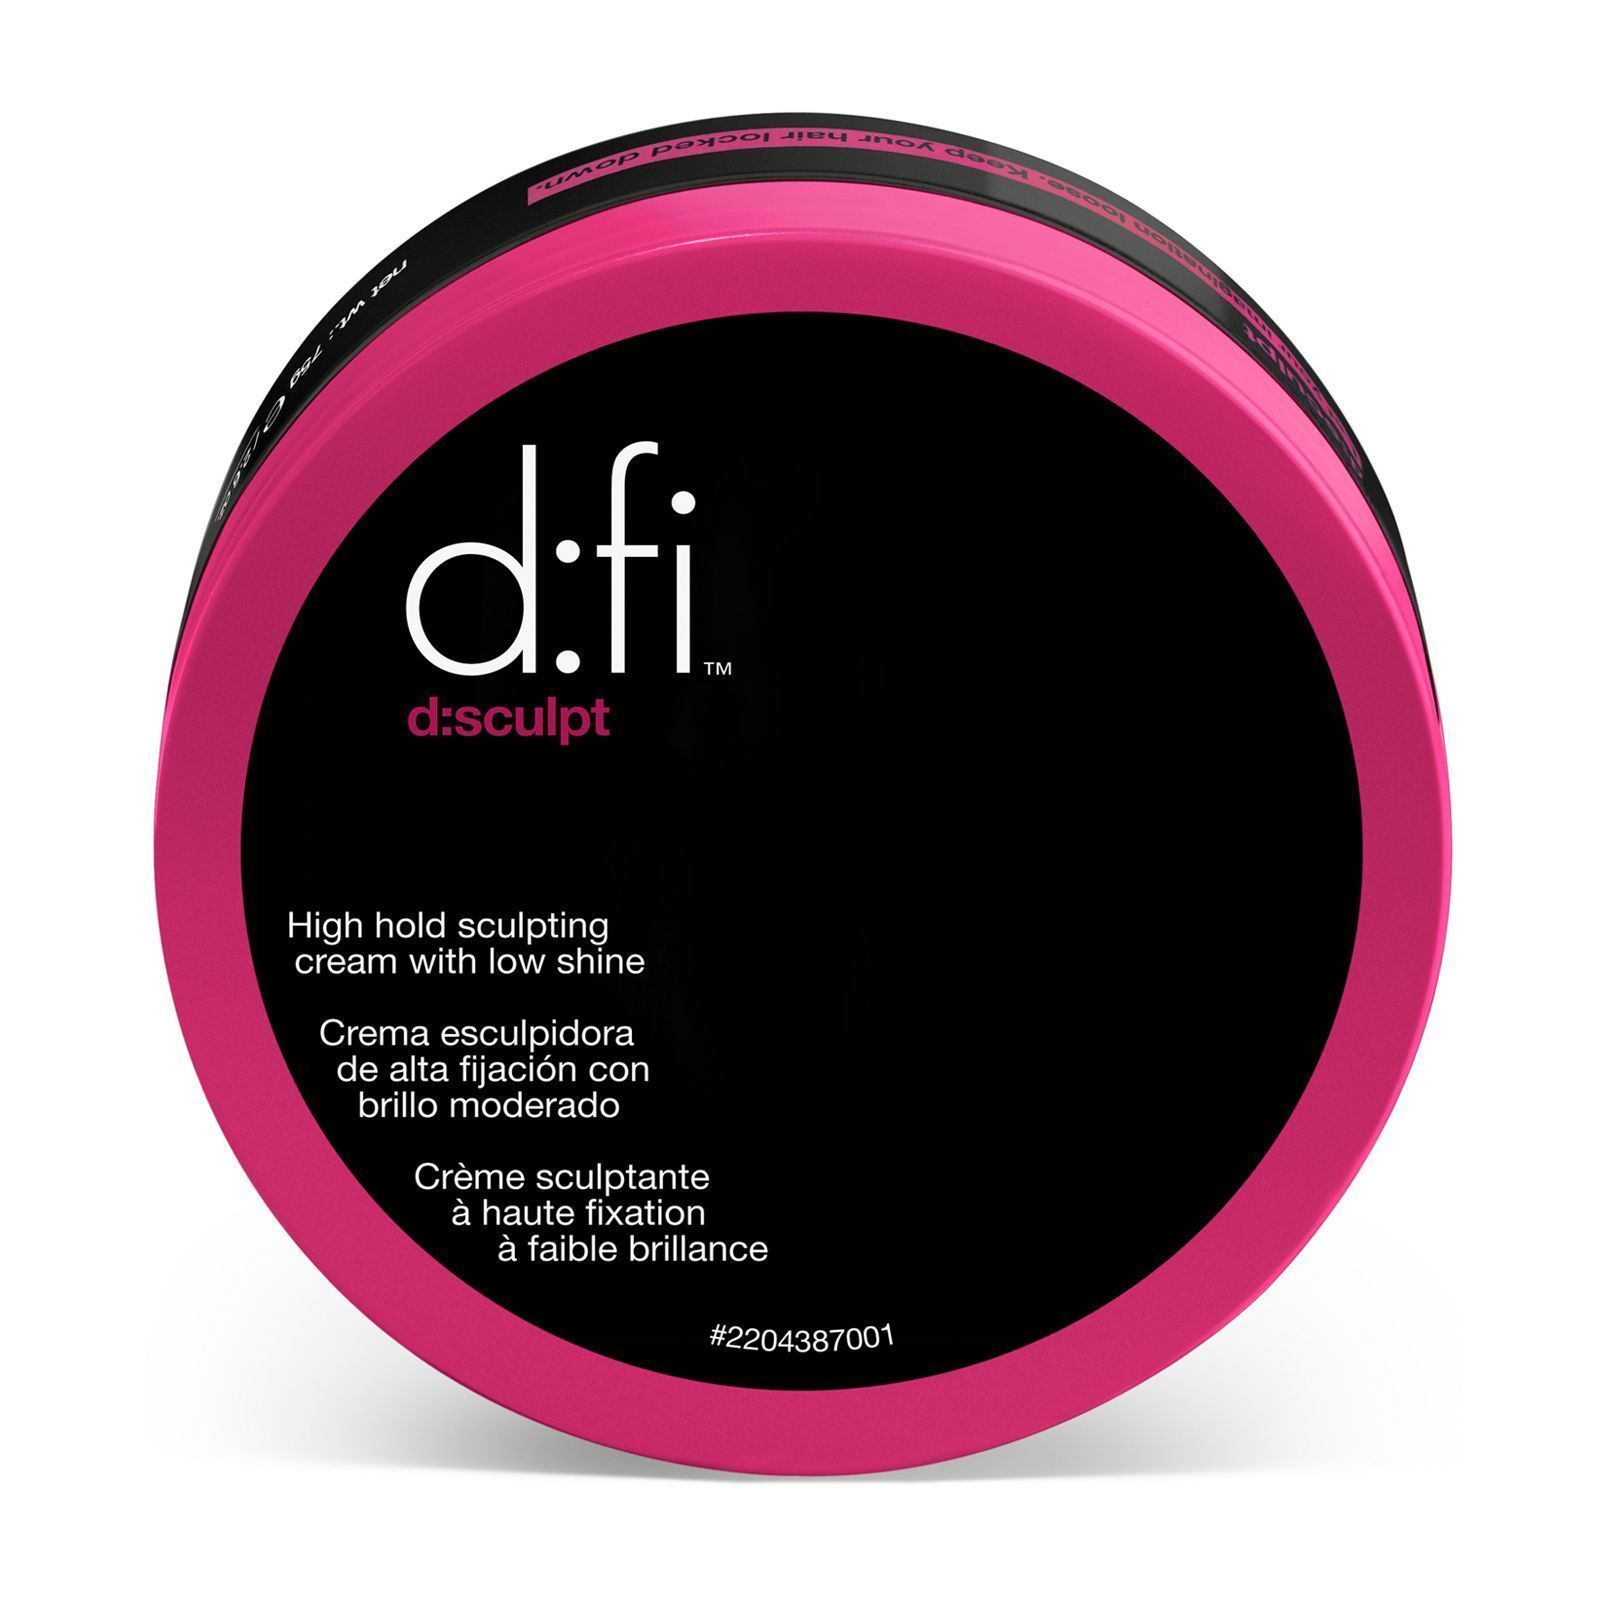 Primary image for American Crew d:fi d:sculpt high hold low shine hair sculptor 2.6 oz